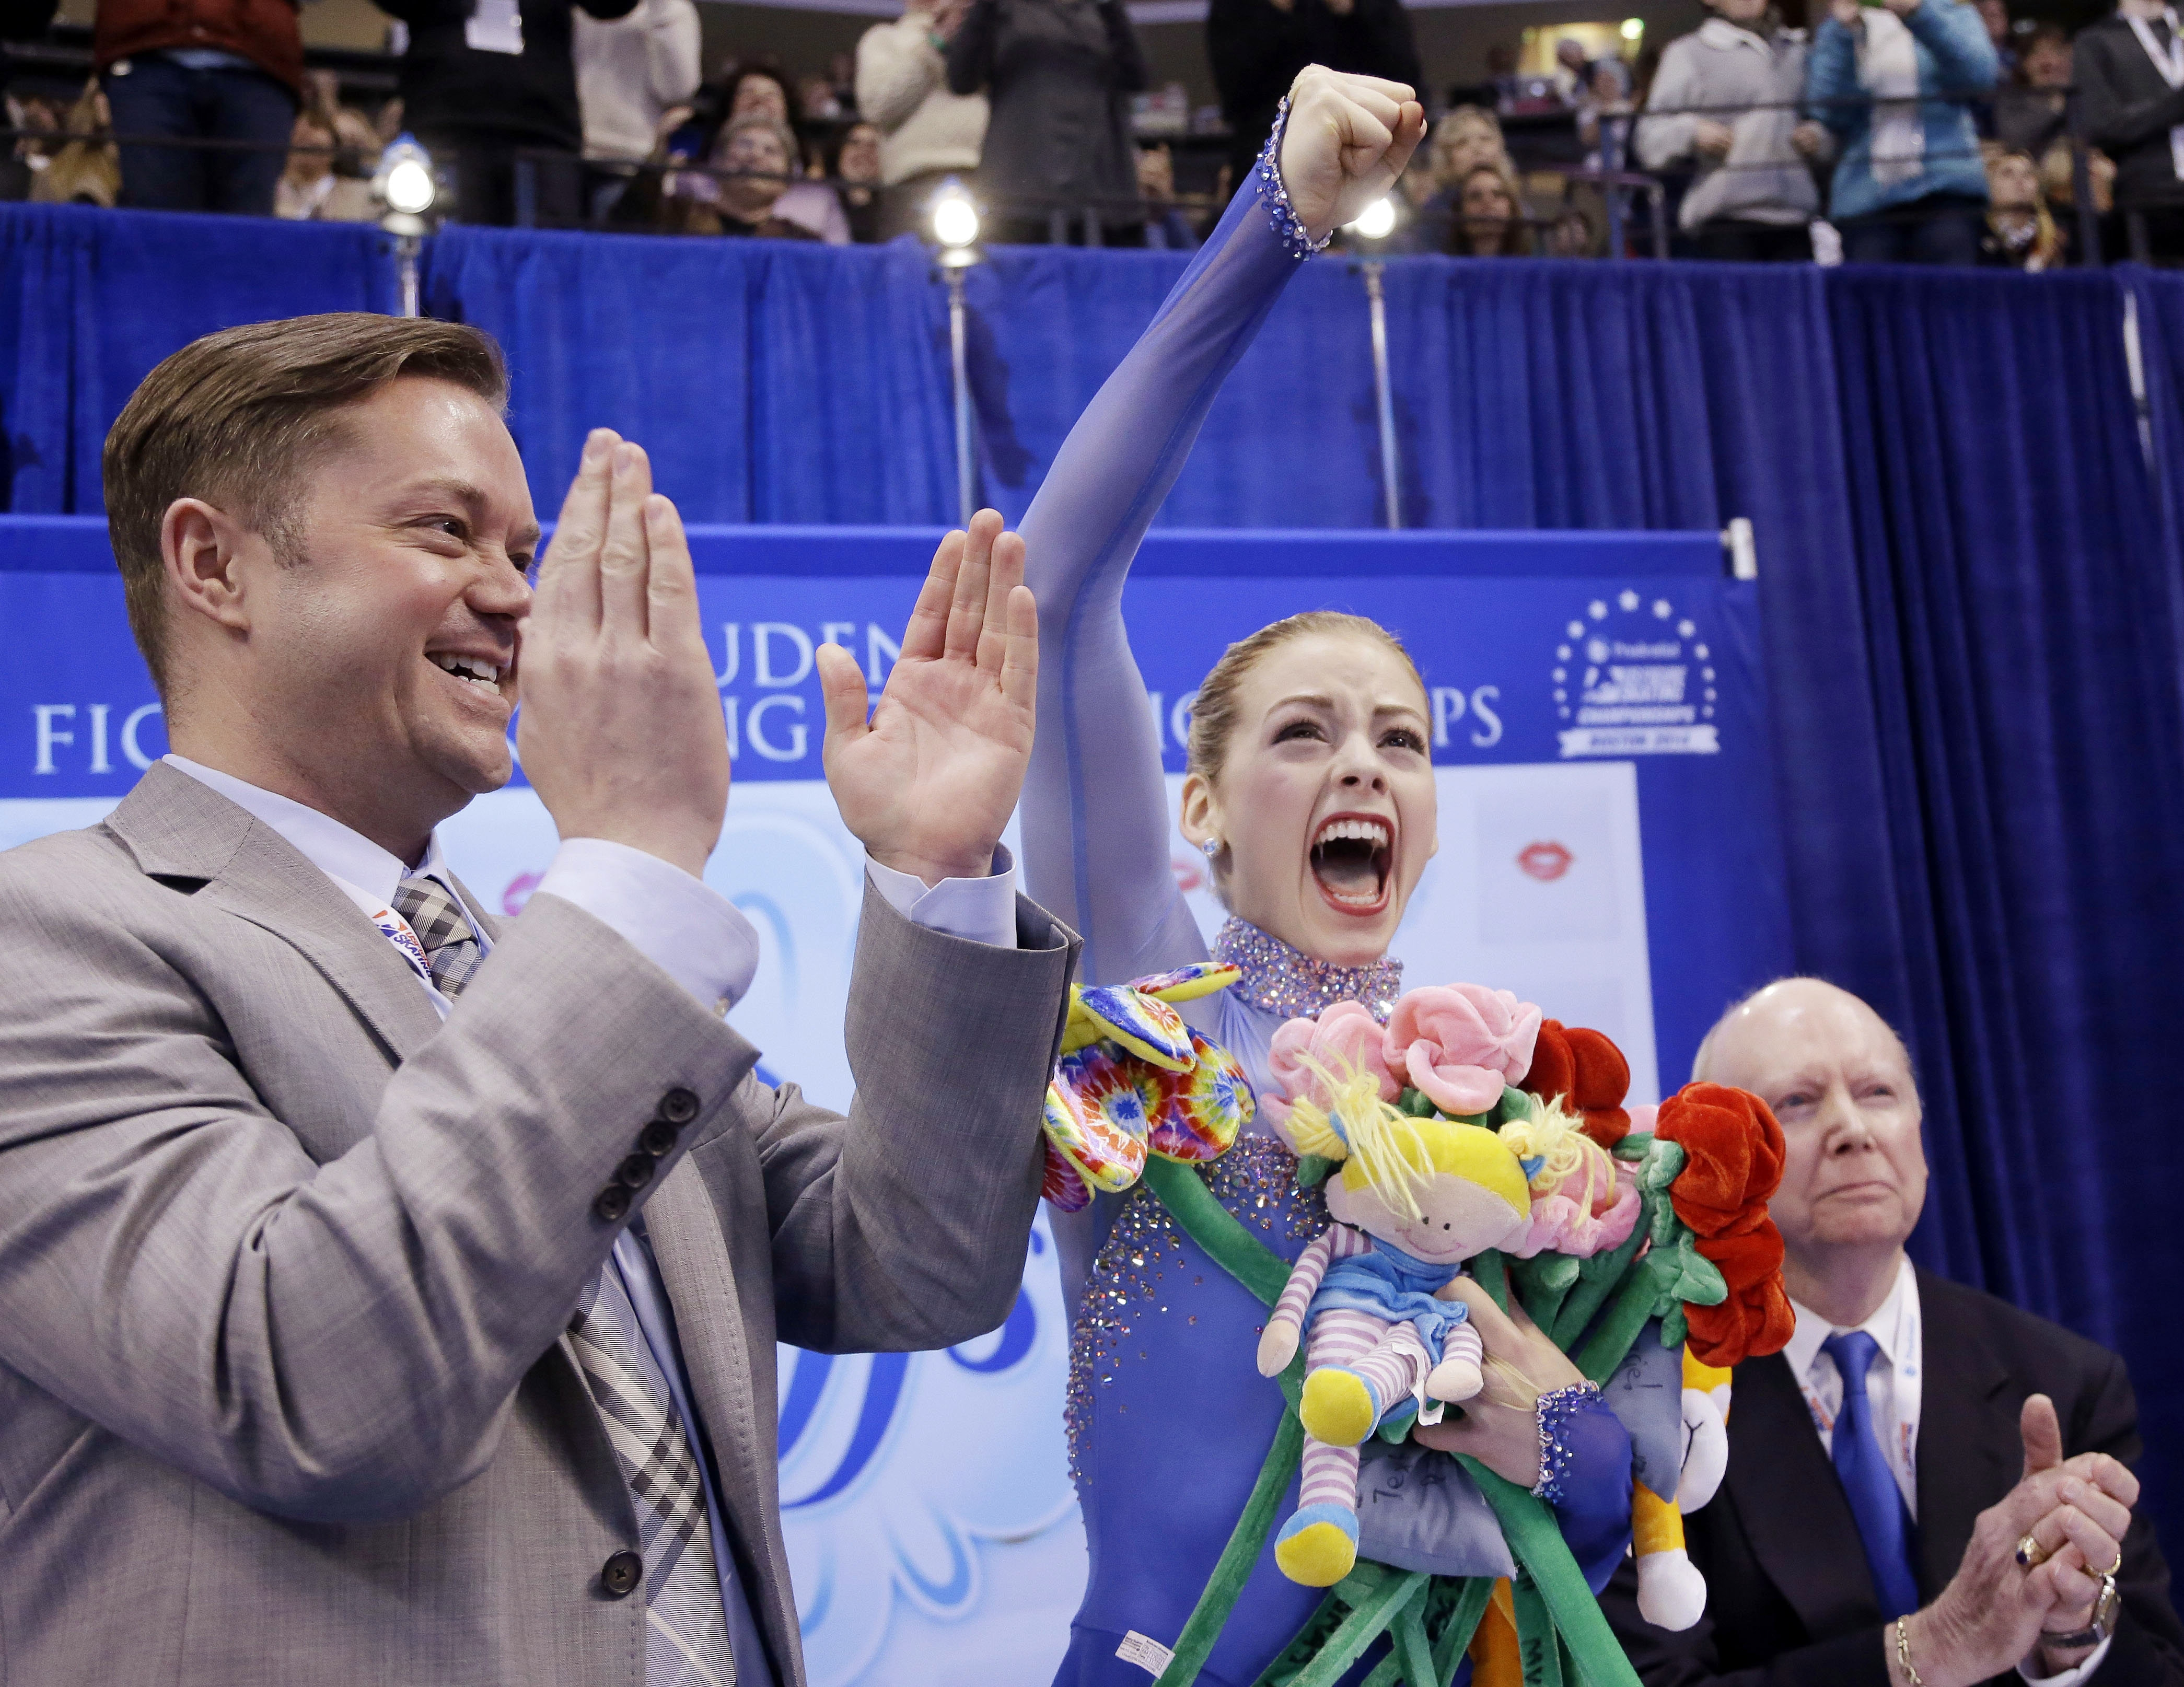 Gracie Gold performed superbly at the national championships in Boston.